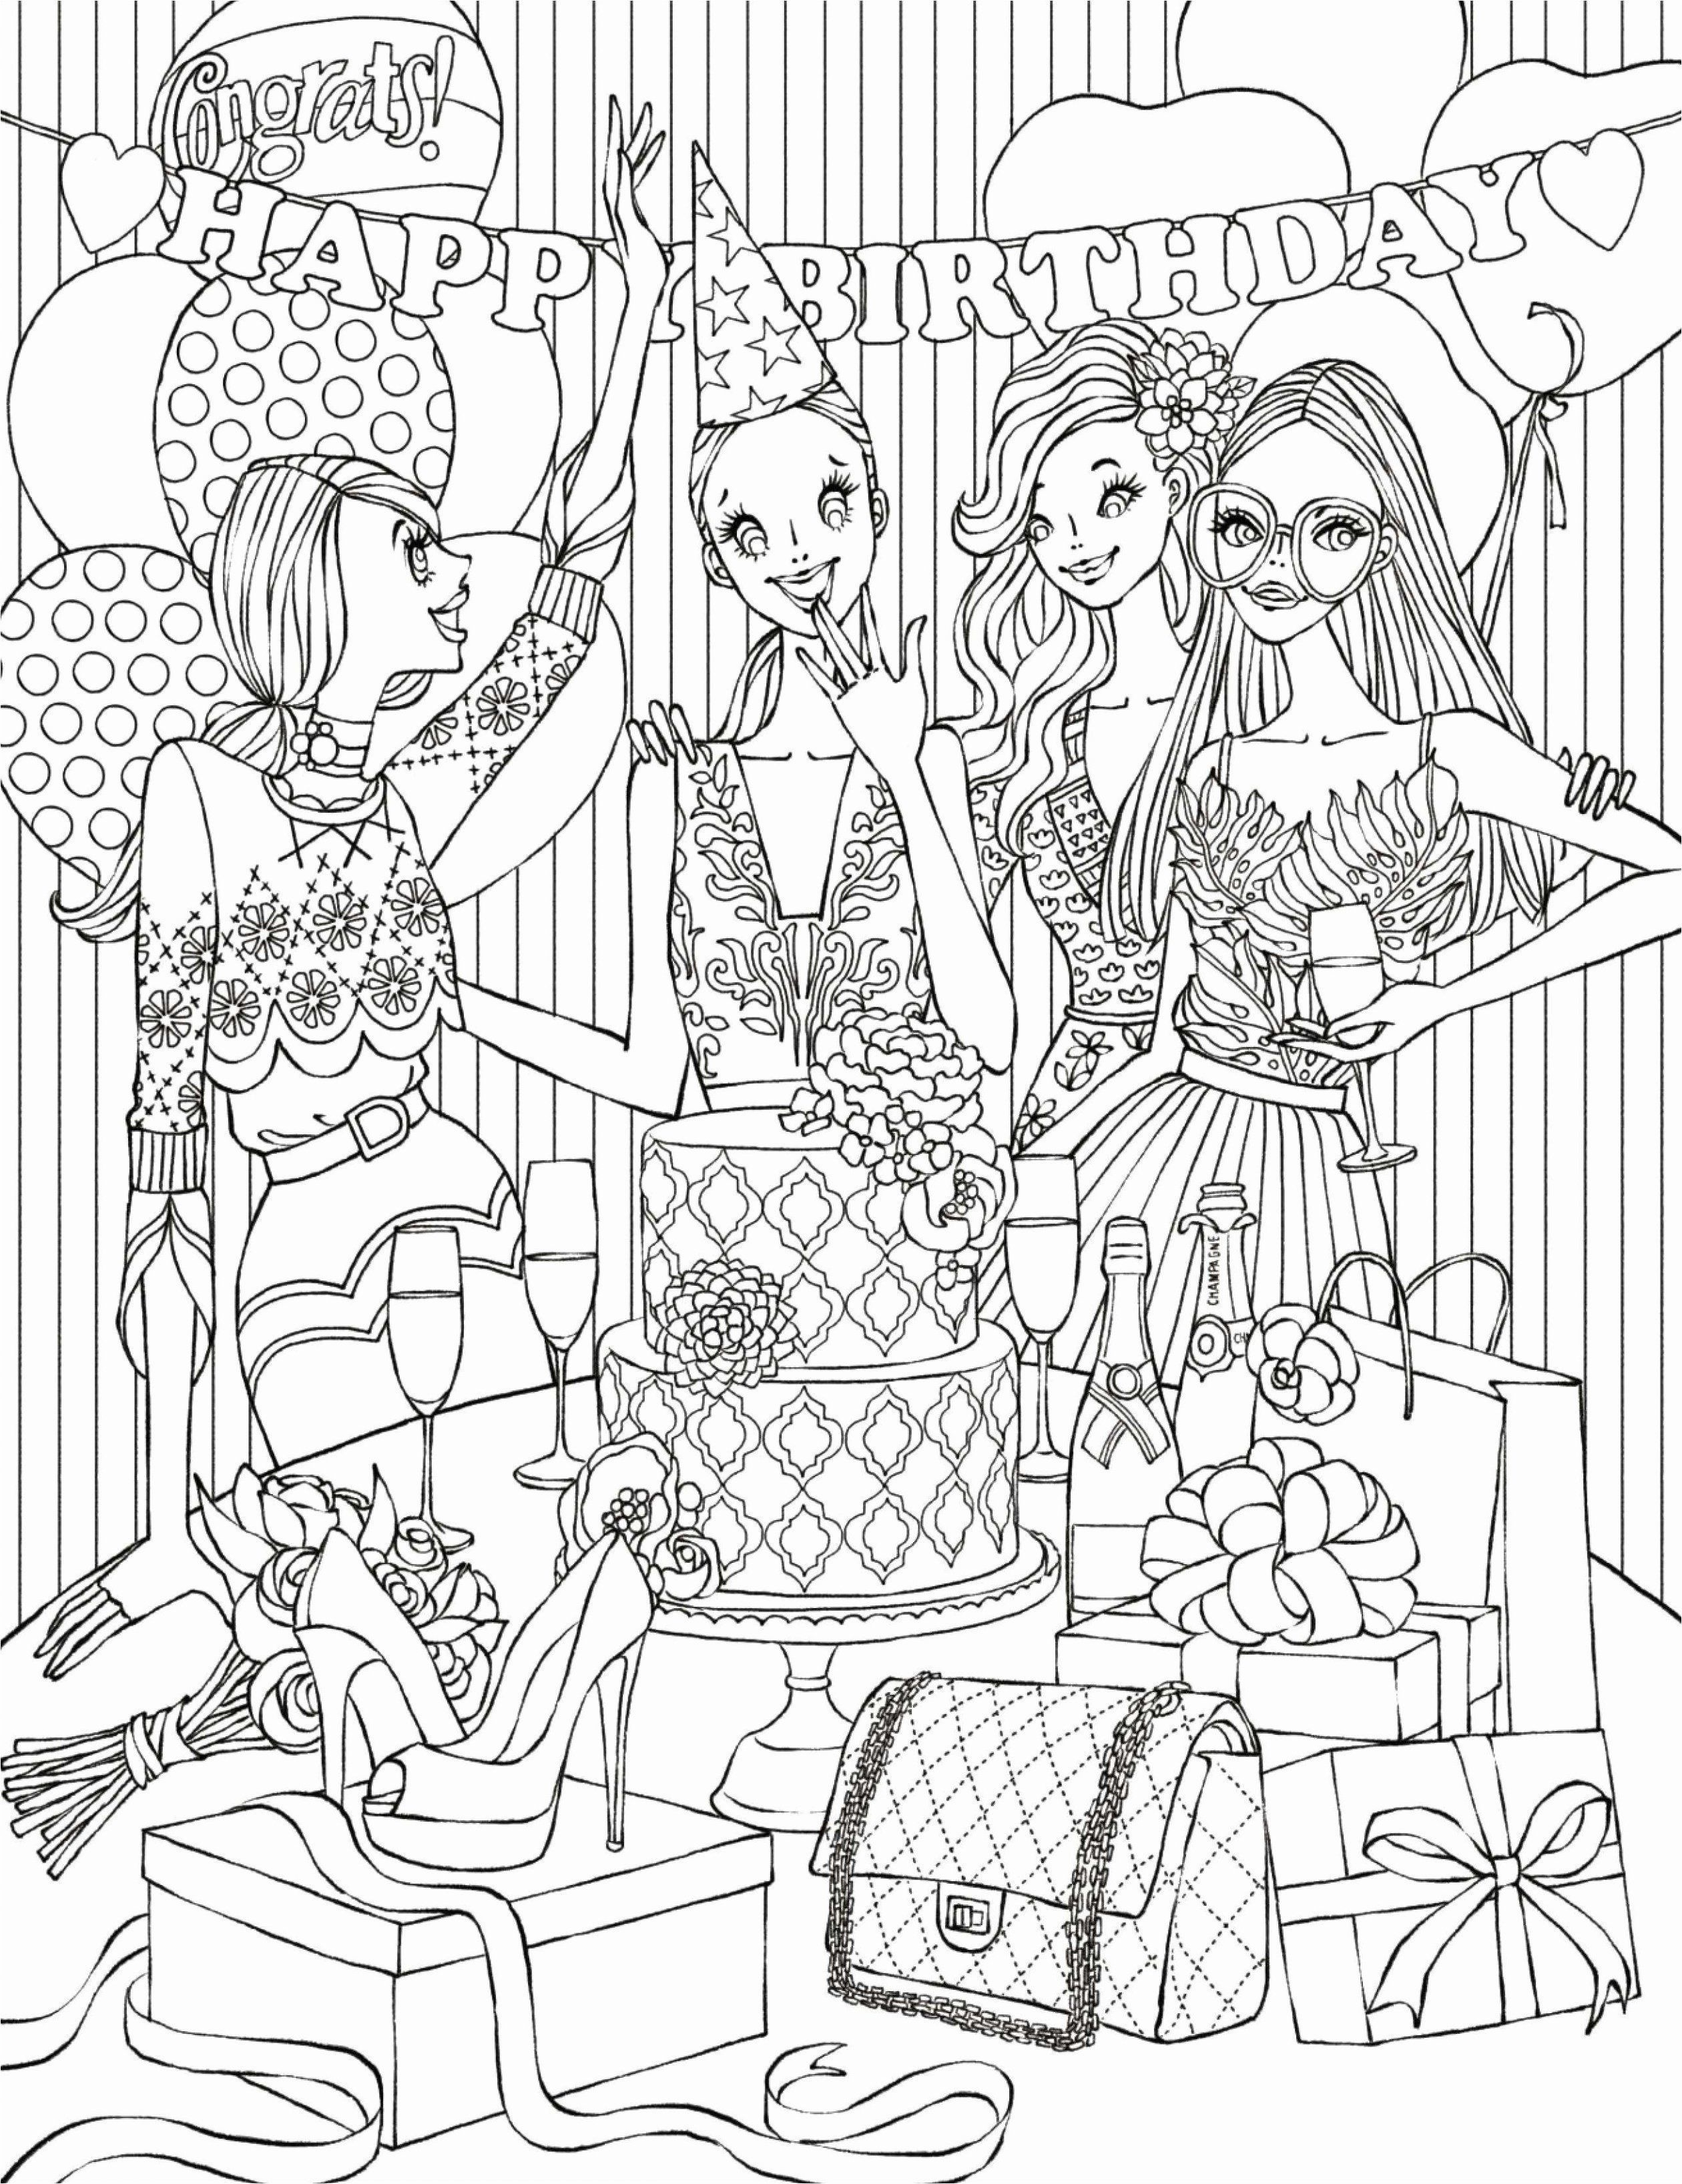 Hottest Free Coloring Books Fall Tips Here Is The Greatest Guide To Shading With Regard In 2021 Fall Coloring Pages Cool Coloring Pages Disney Princess Coloring Pages